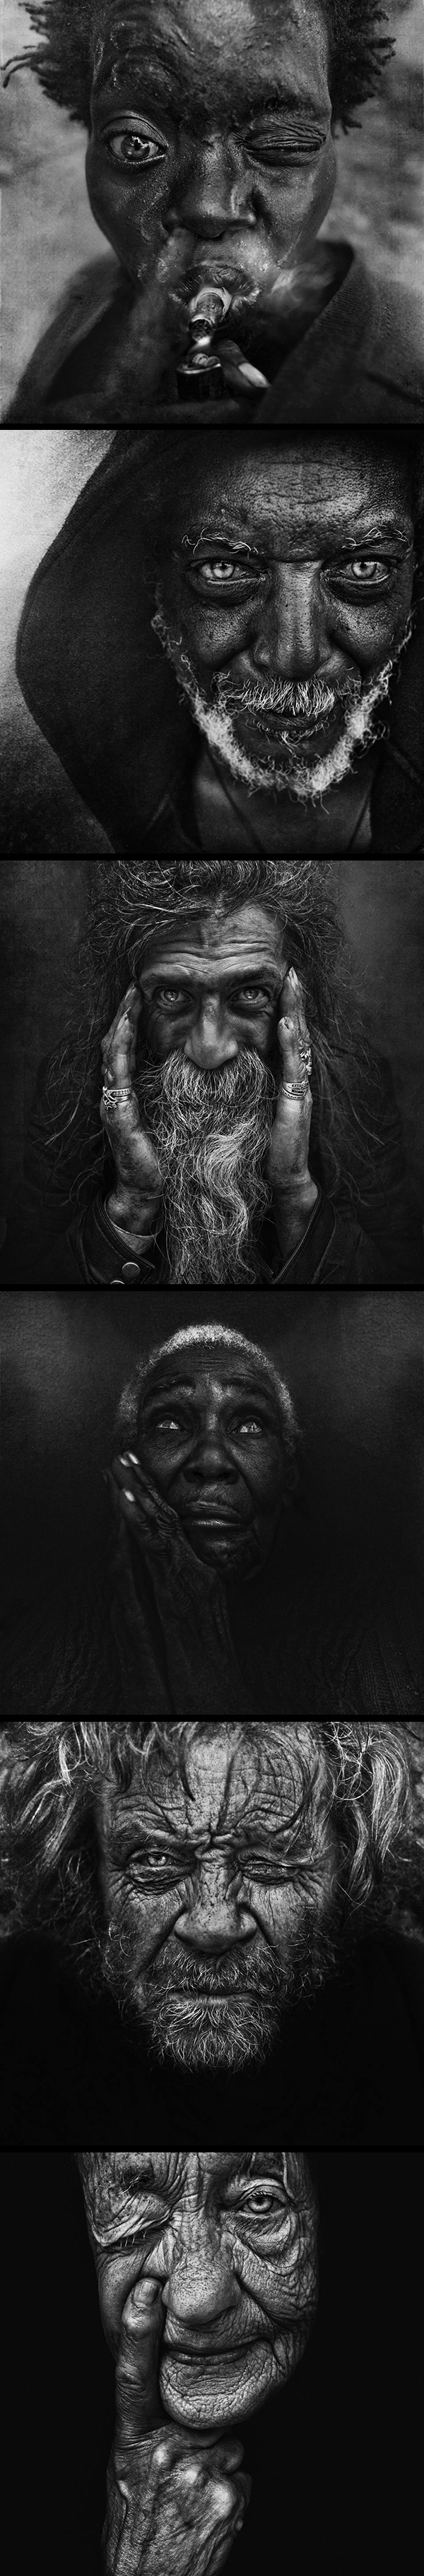 Inspirations graphiques photographie : Lee Jeffries | Homeless